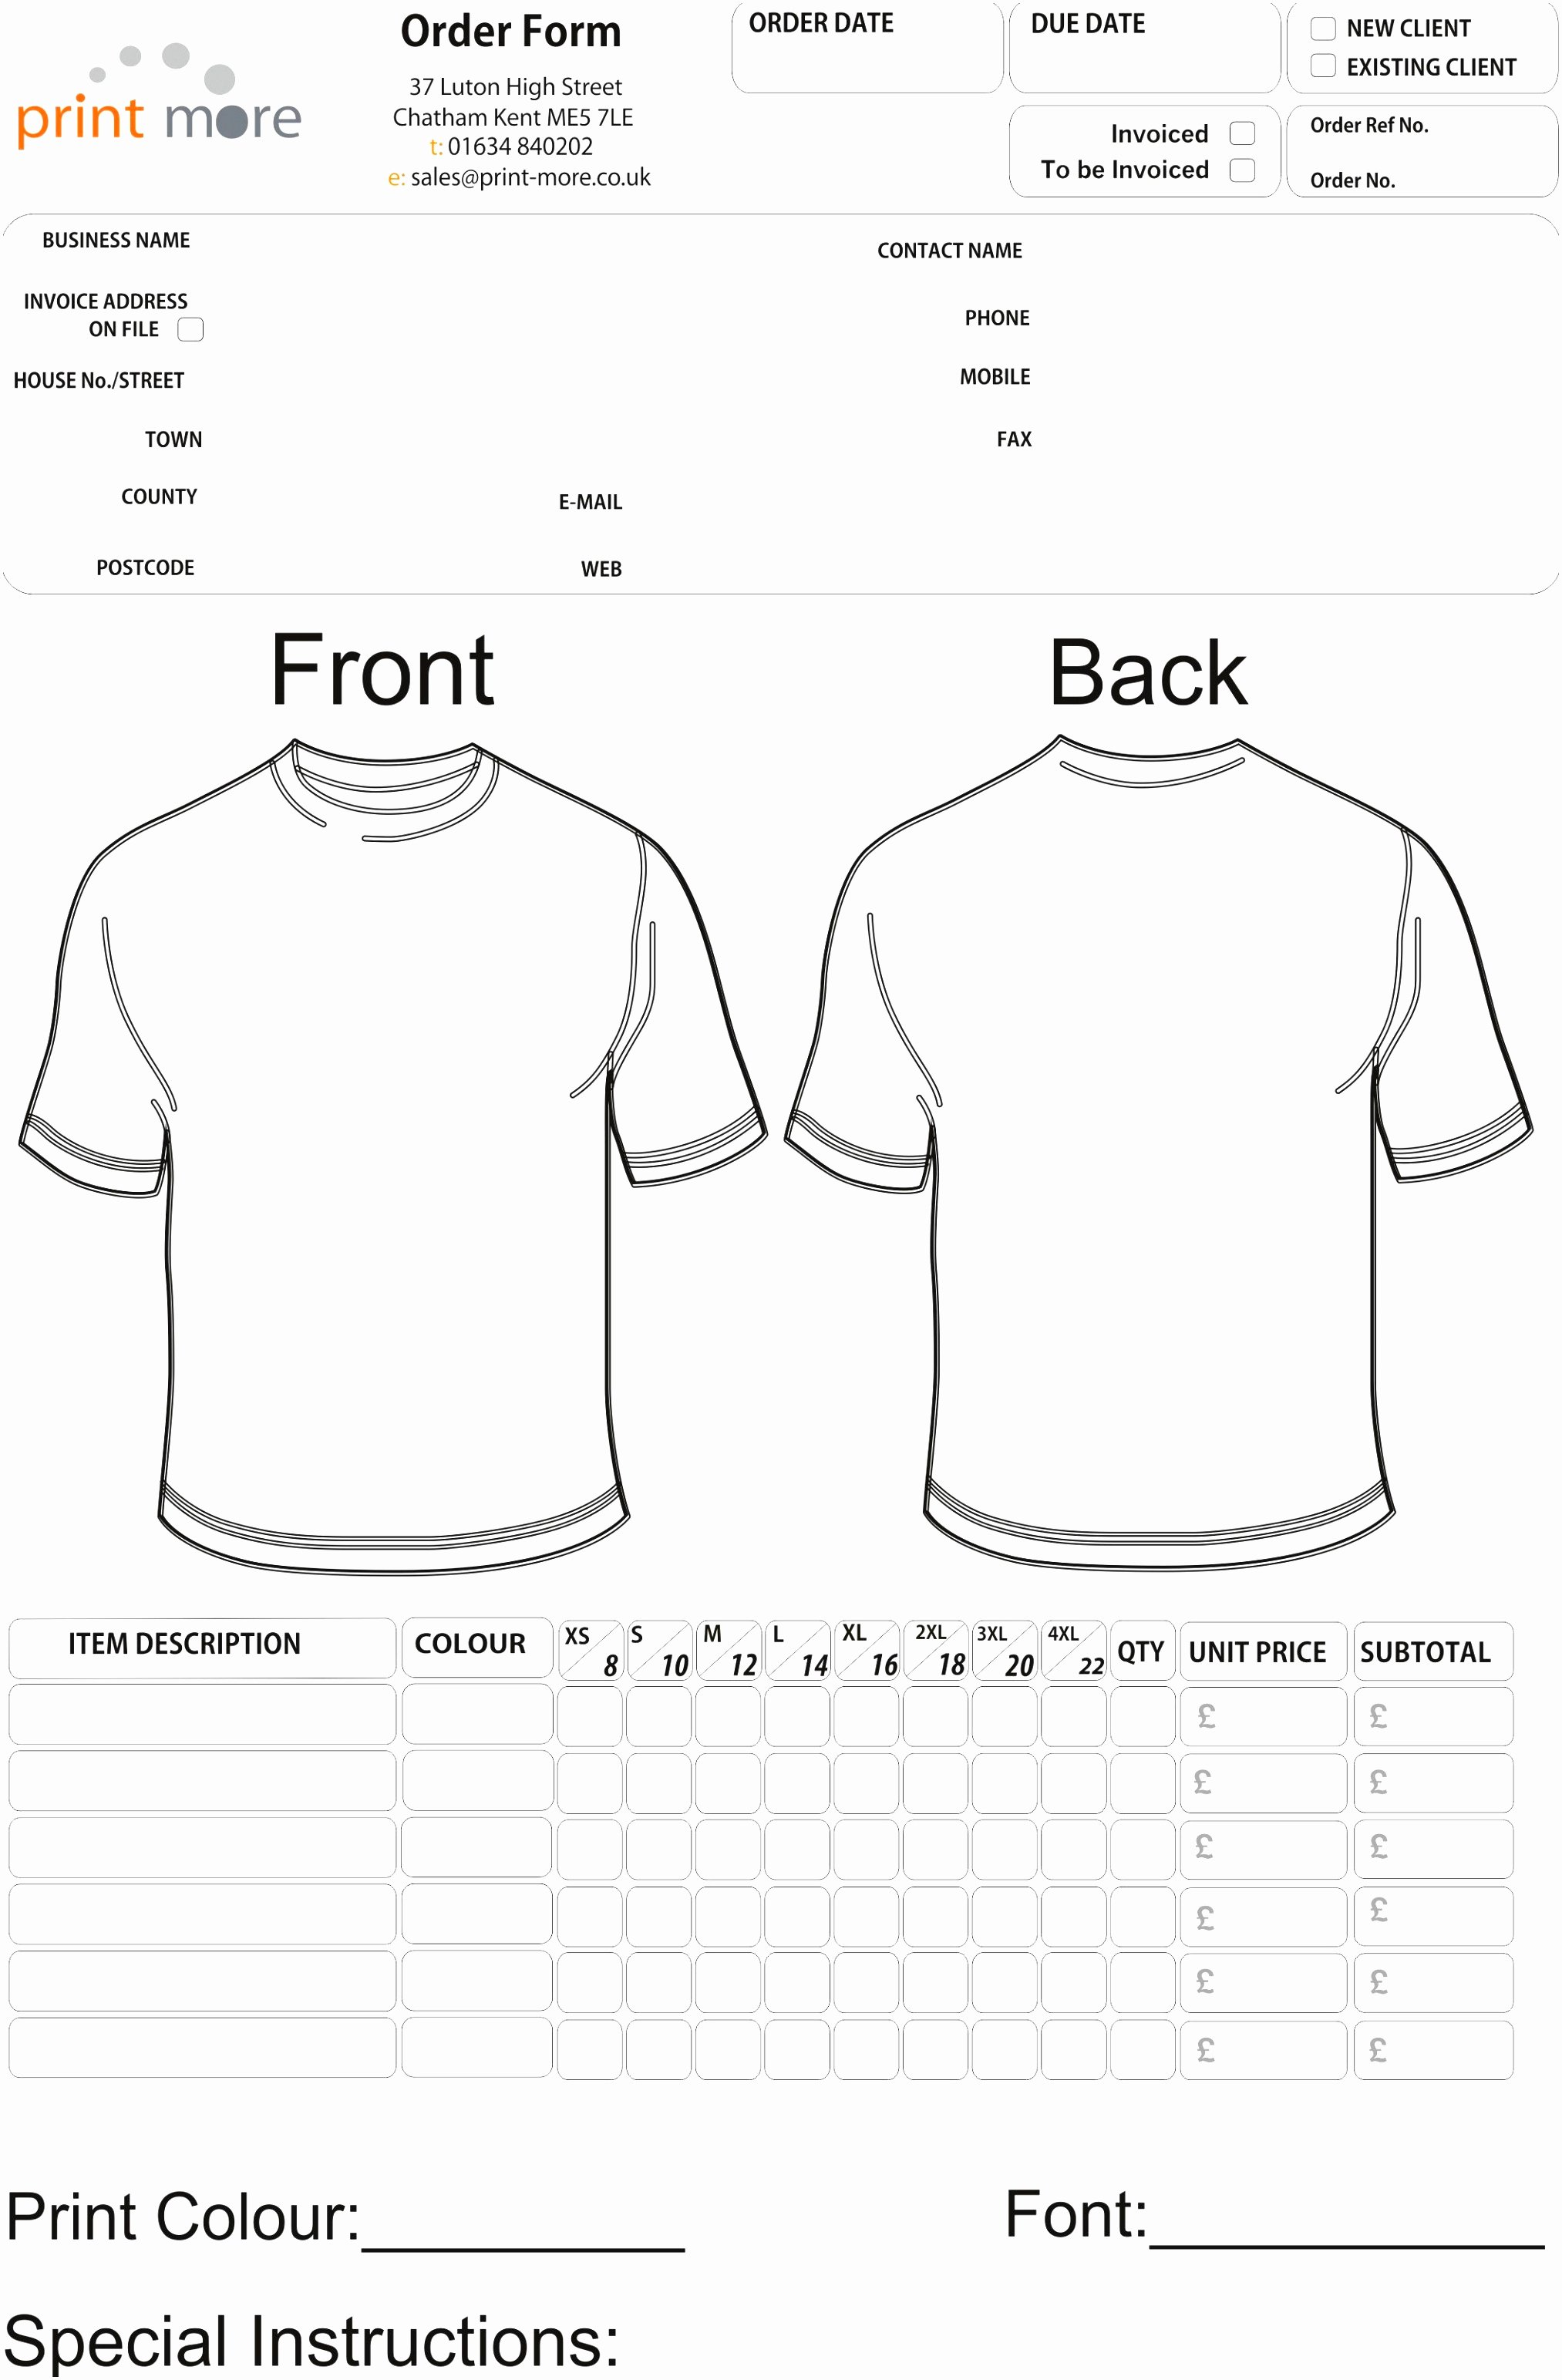 Fundraiser order form Template Word Fresh 9 Fundraiser order form Template Word Yywwo